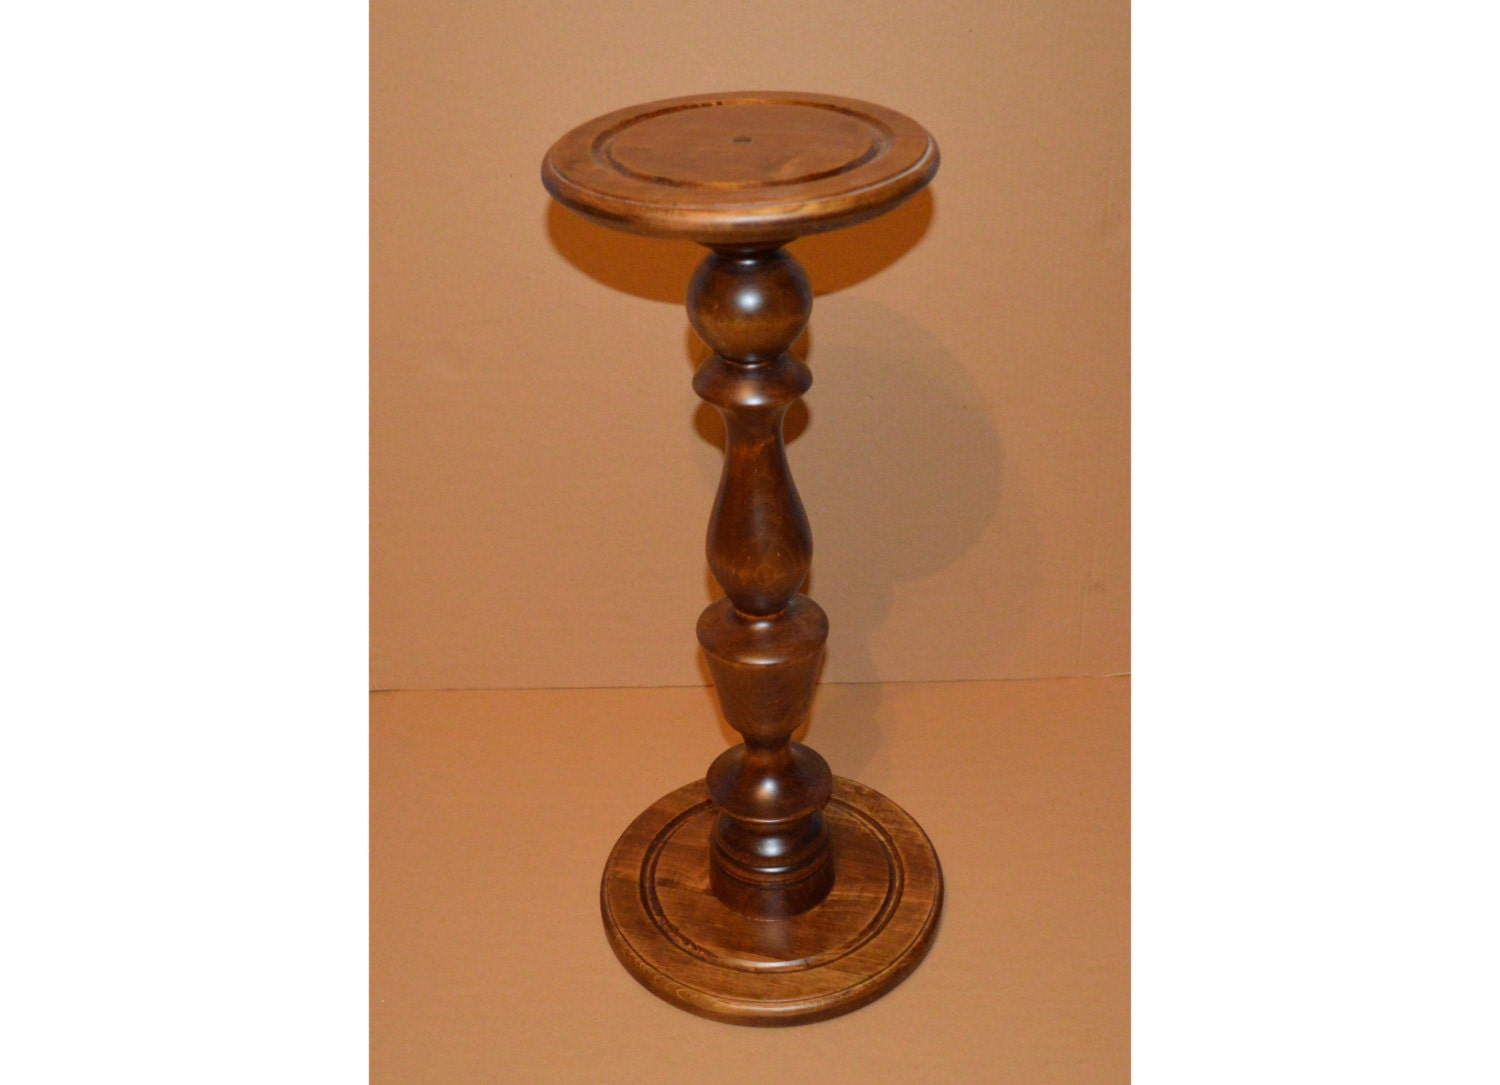 Fern stand plant wood pedestal table wooden